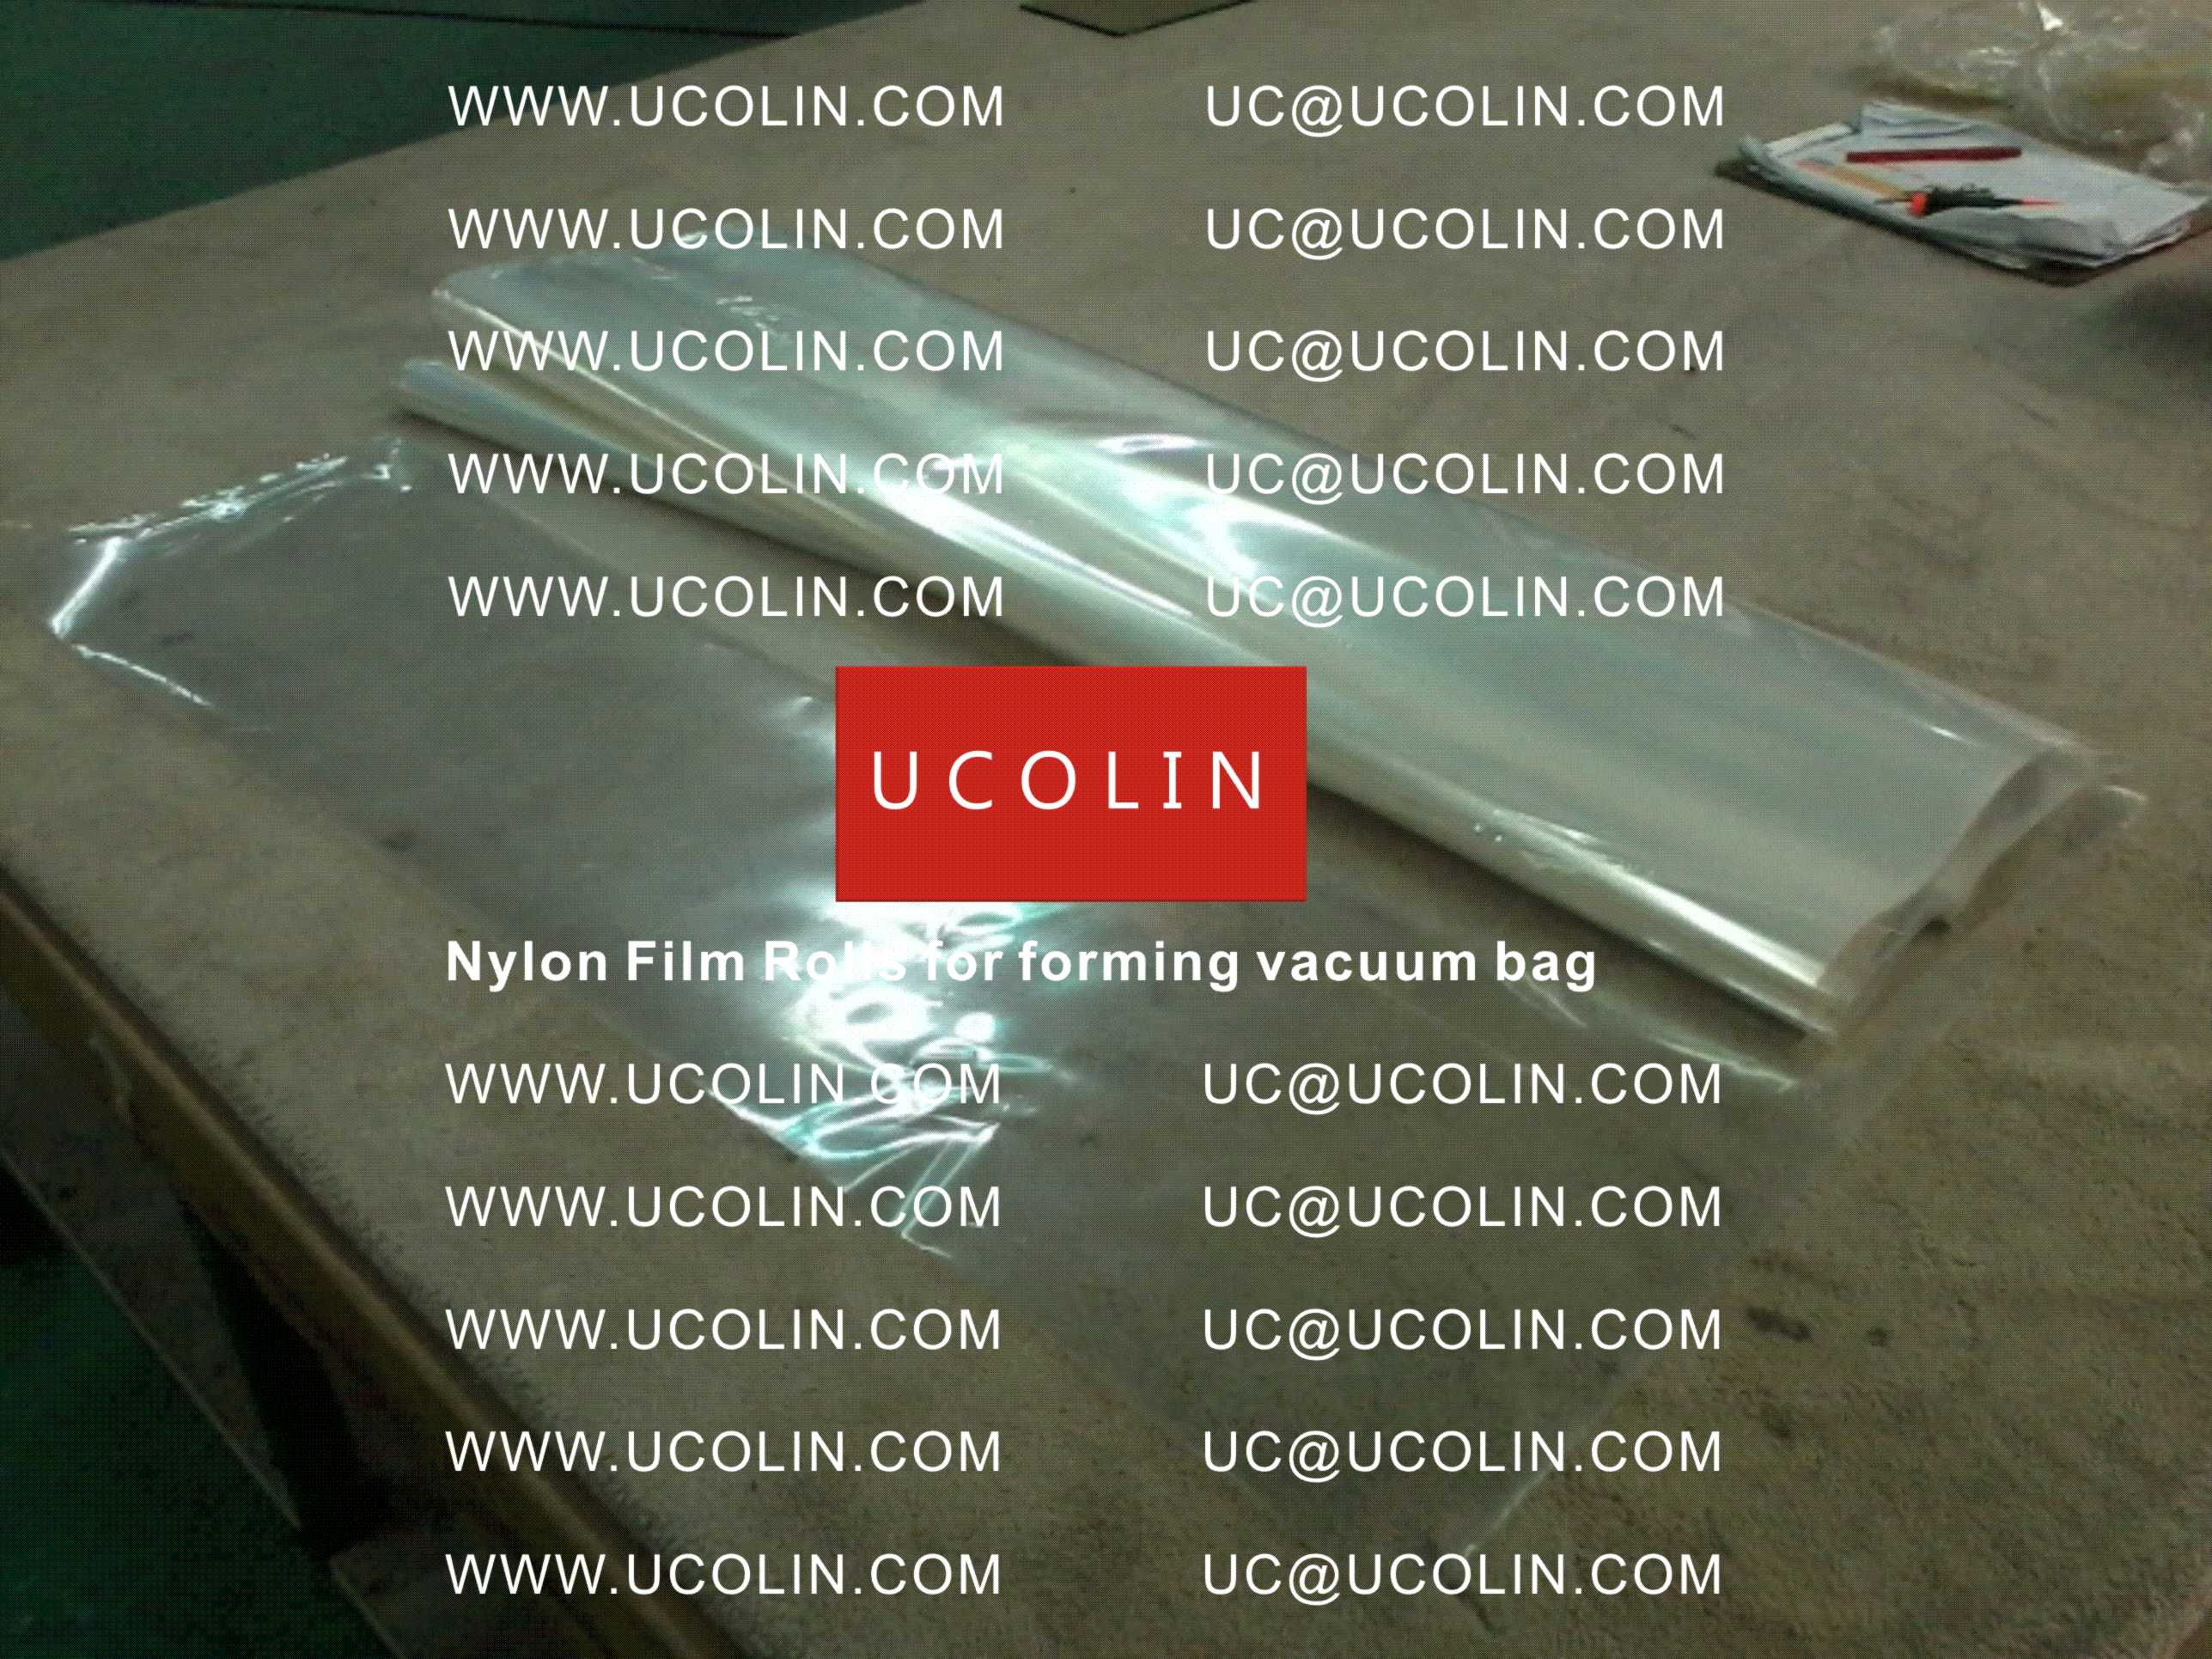 002 Disposable Nylon Film Rolls for Forming Vacuum Bag for Laminating Curved Glass in Autoclave